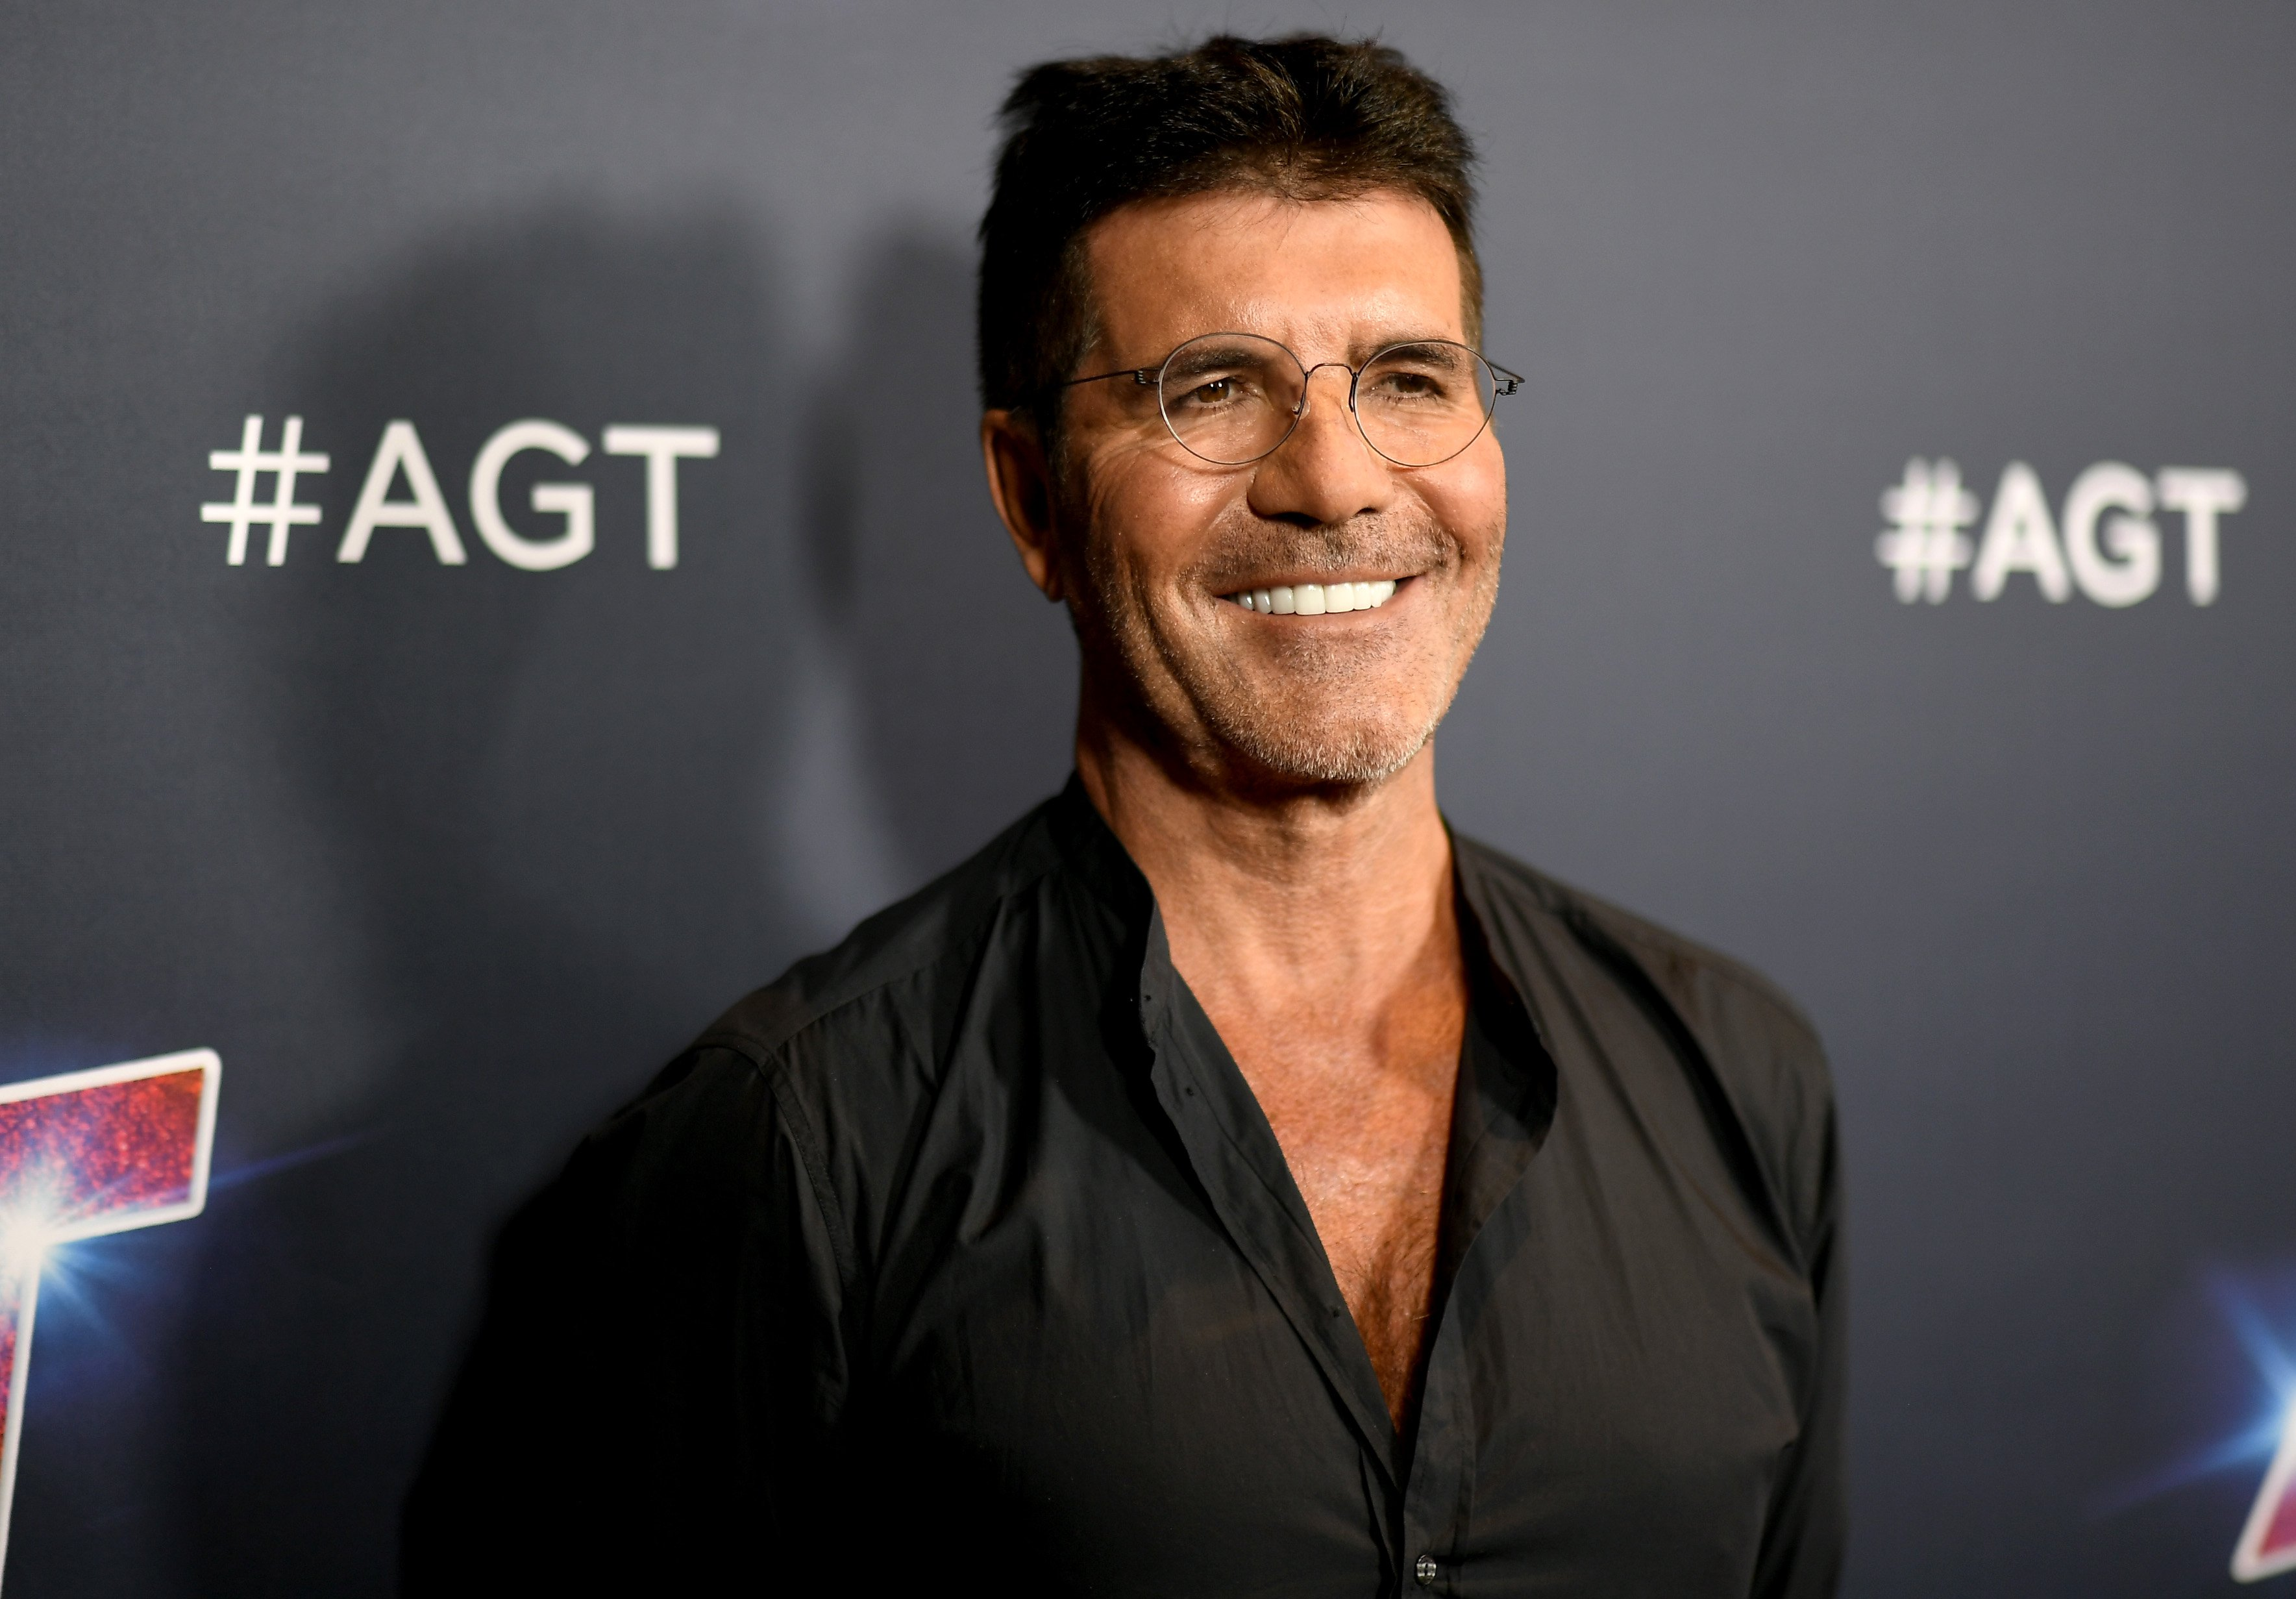 """Simon Cowell attends """"America's Got Talent"""" Season 14 Live Show Red Carpet on September 17, 2019, in Hollywood, California.   Source: Getty Images."""